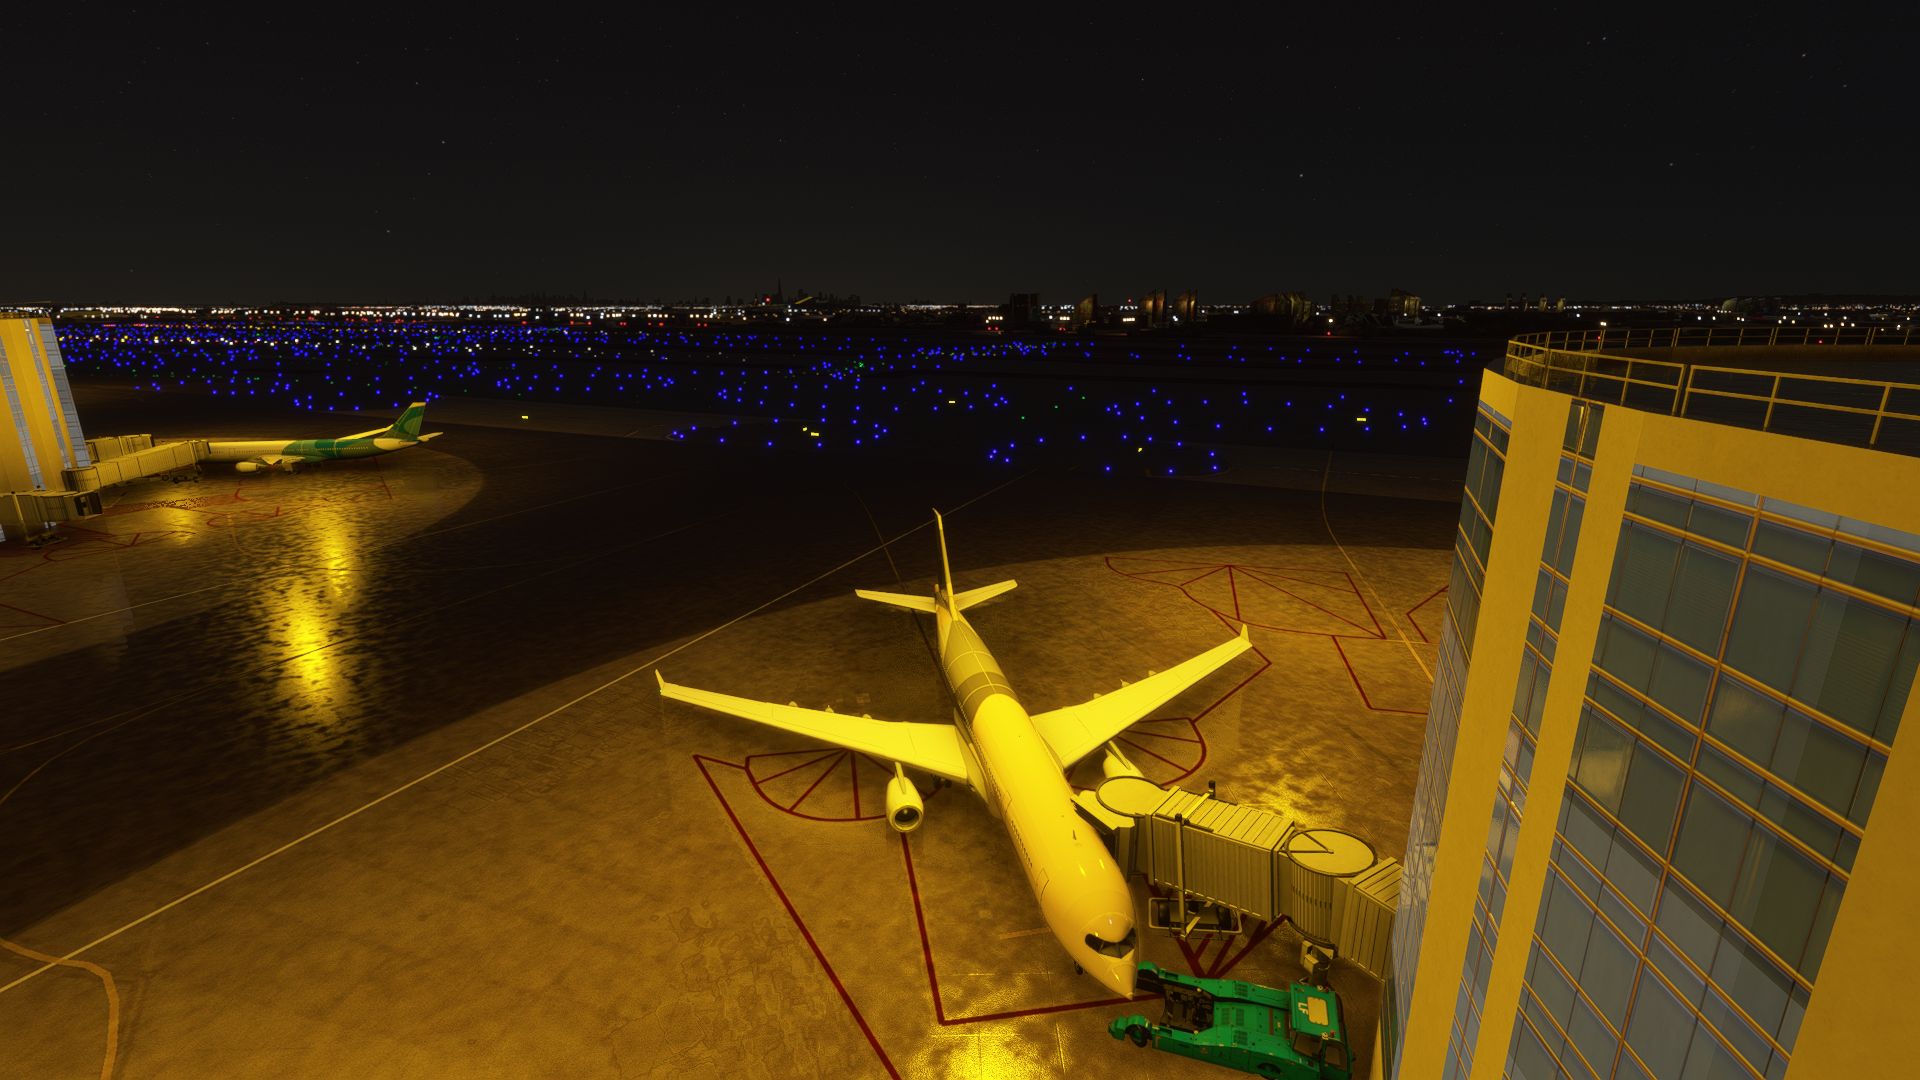 ILLUMINATORS - NEWARK AIRPORT NIGHT LIGHT ENHANCED MSFS